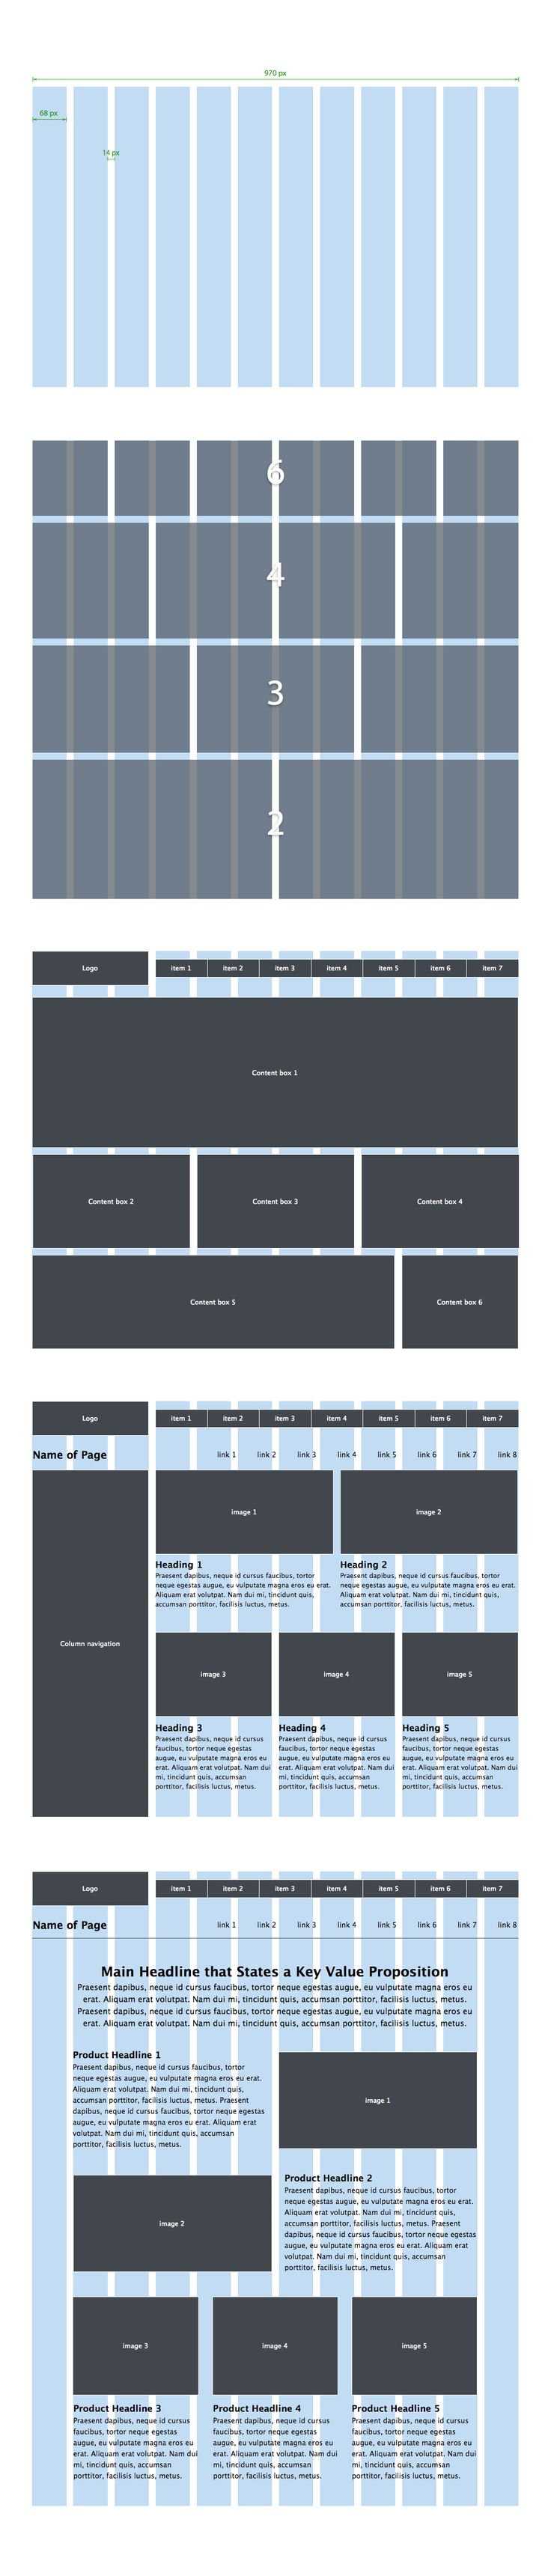 Wireframe Effectively on the New, Improved 970 Grid System *** Page layout is an important aspect of web design. A popular approach to designing page layouts is to use a grid system...